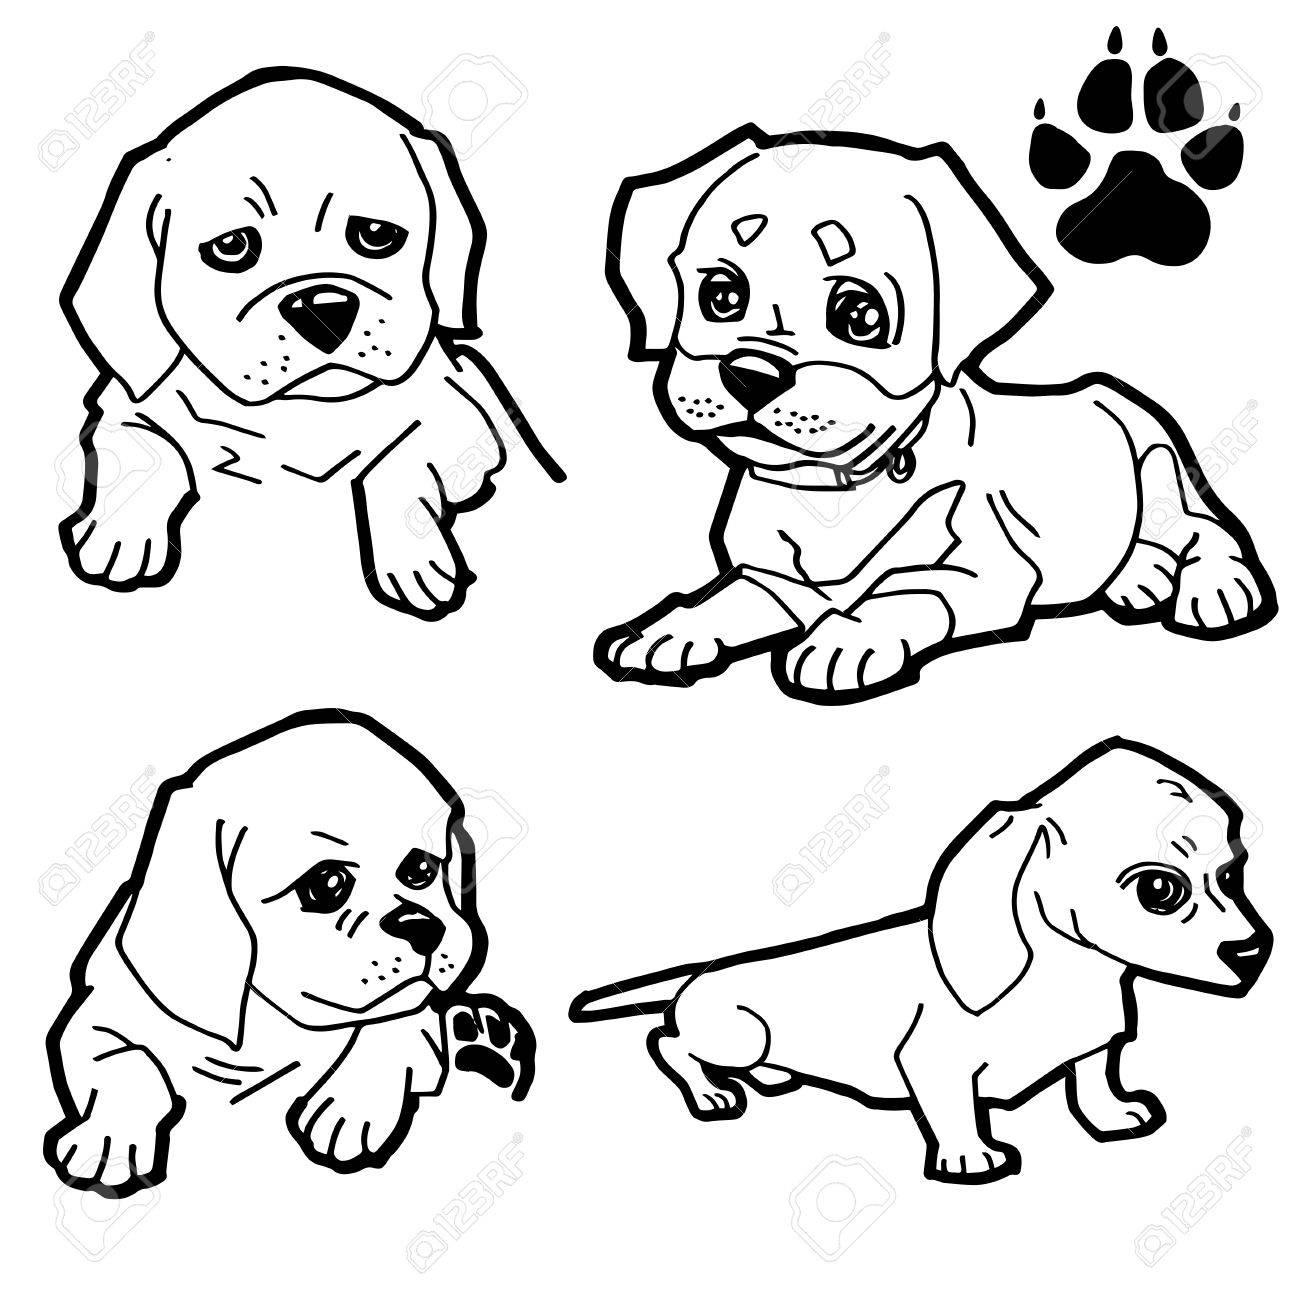 Dog Cartoon And Paw Print Coloring Book On White Background Vector Stock